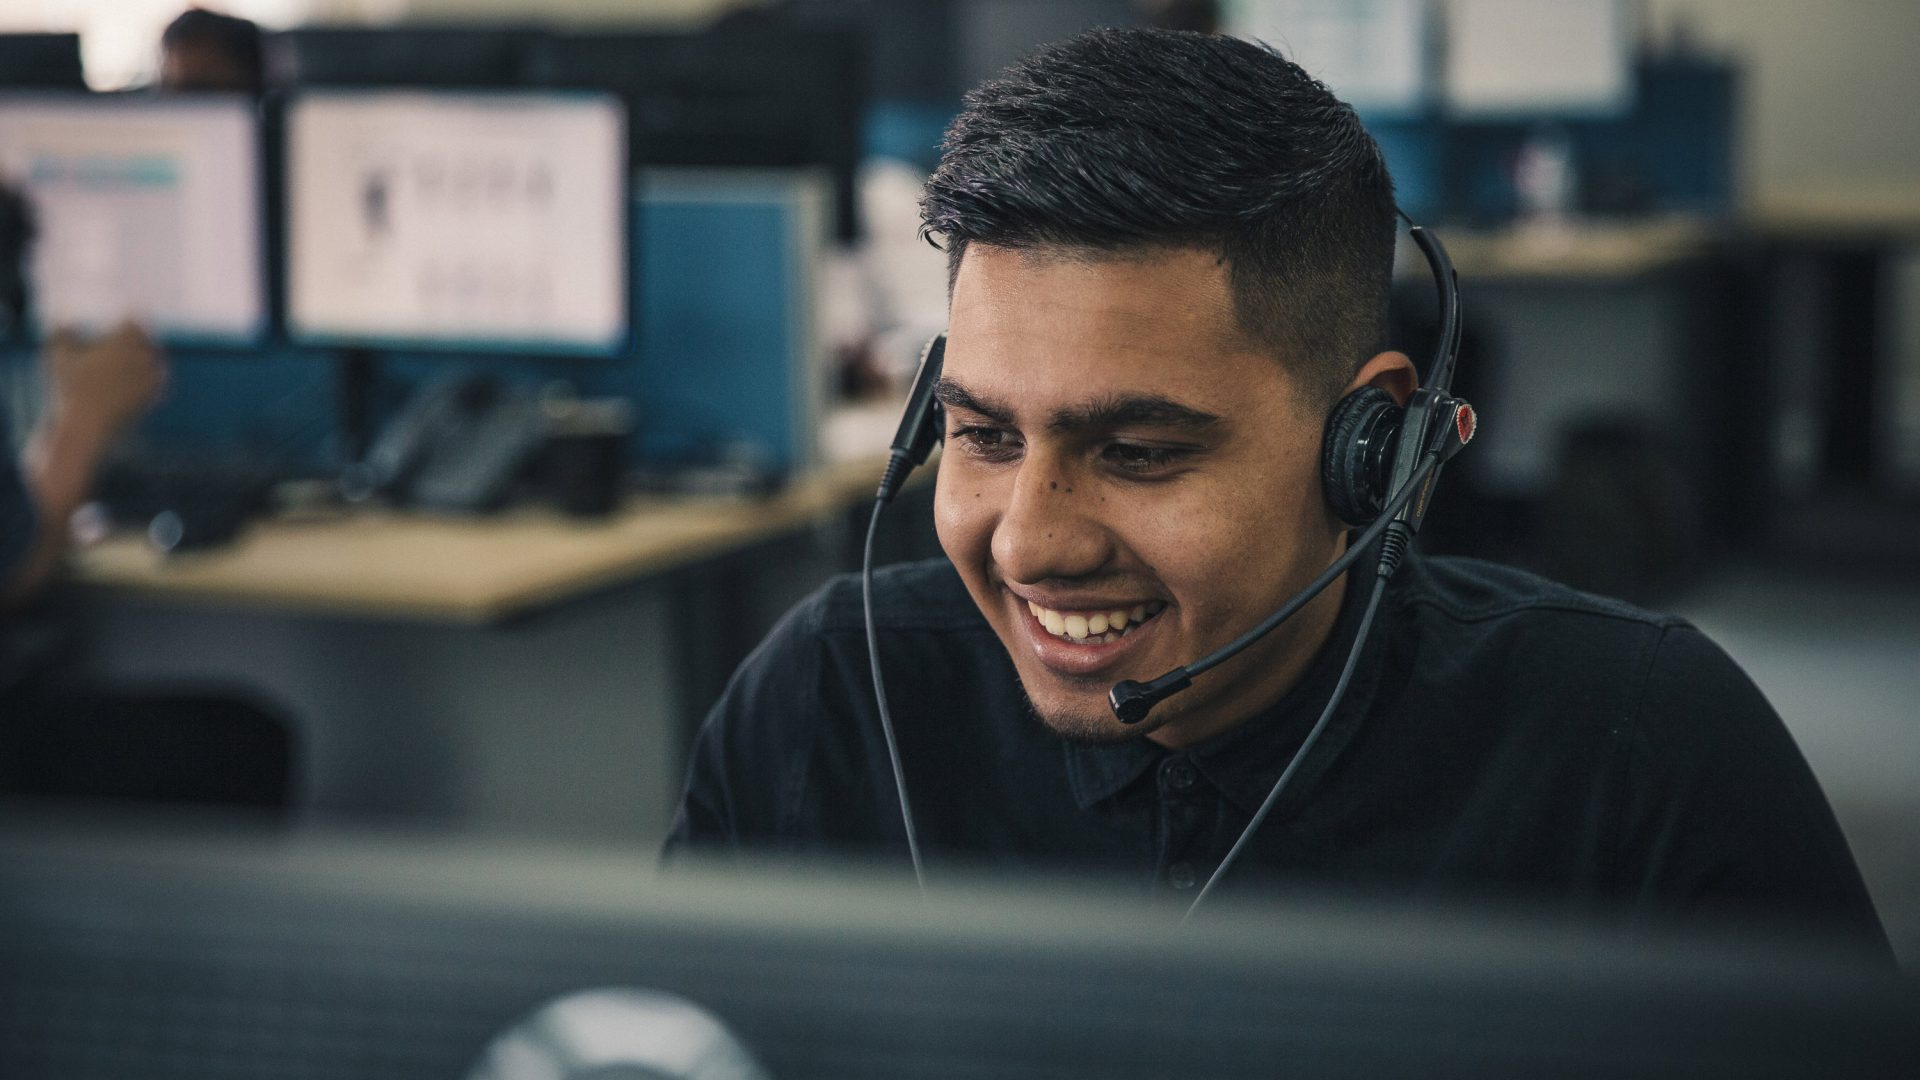 Young man smiles as he answers the phone in a call centre